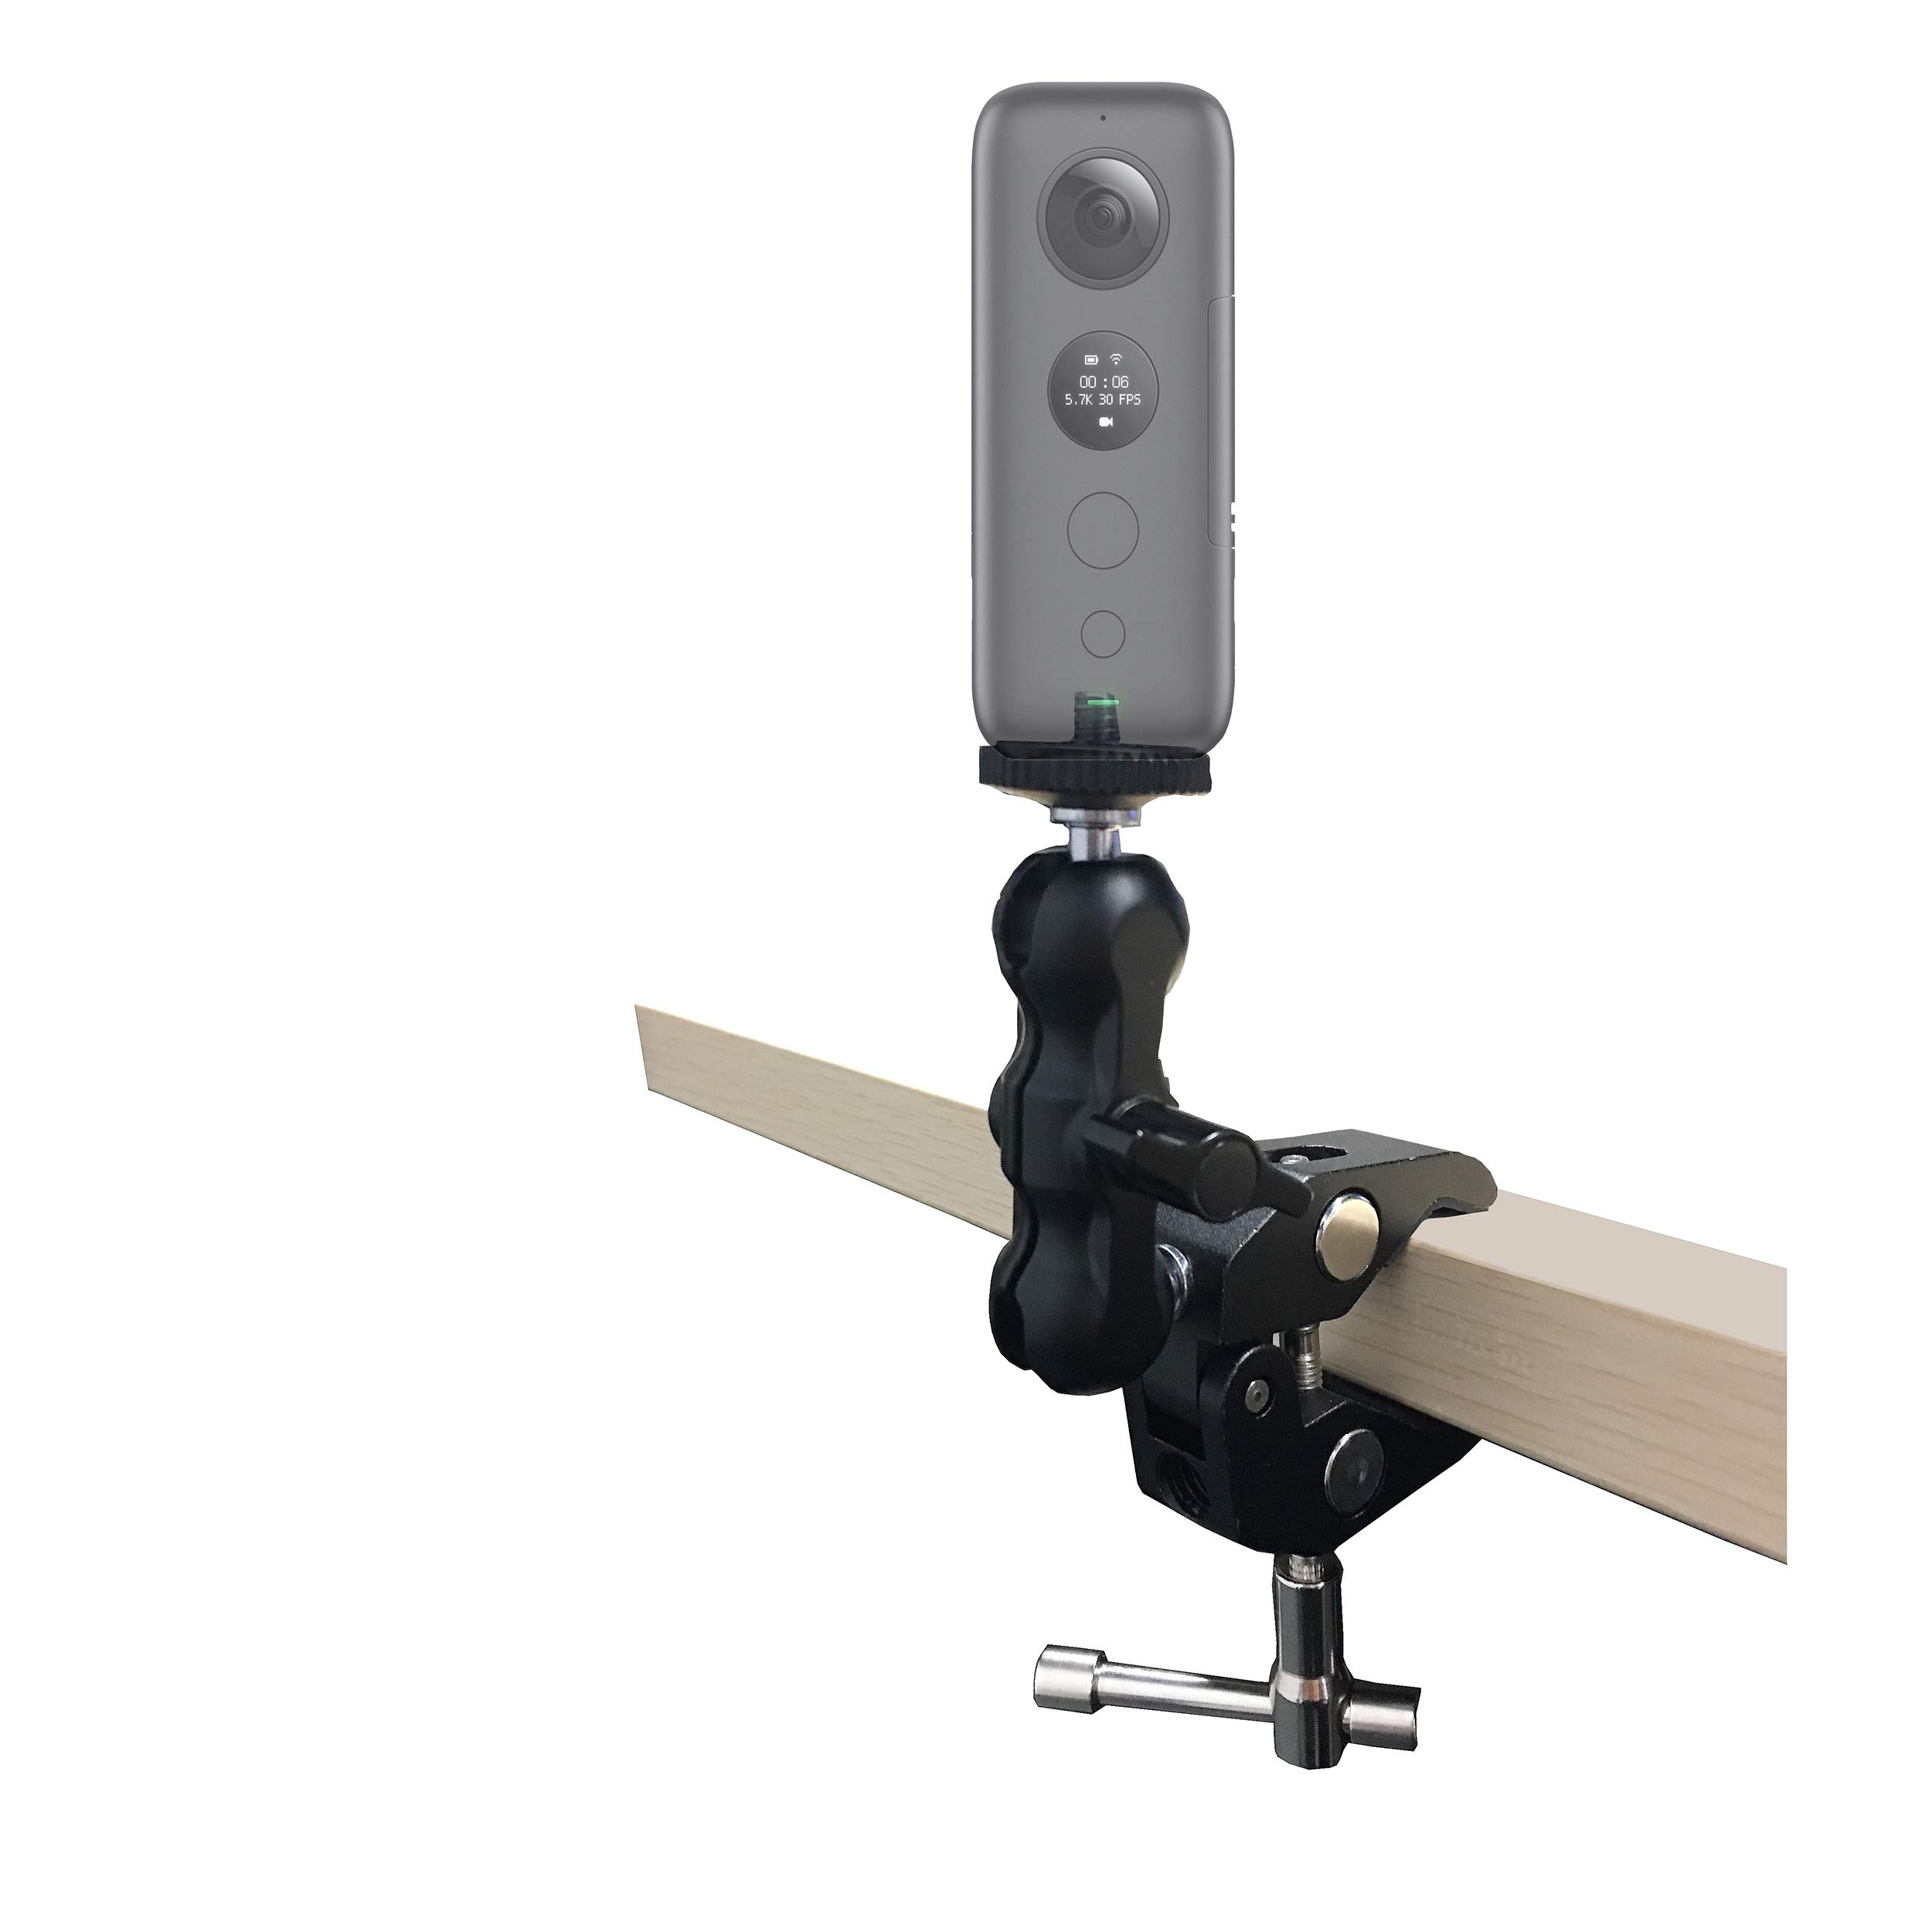 1/4 Universal Adjustable Super Clamp Mount for Insta360 One X by VGSION